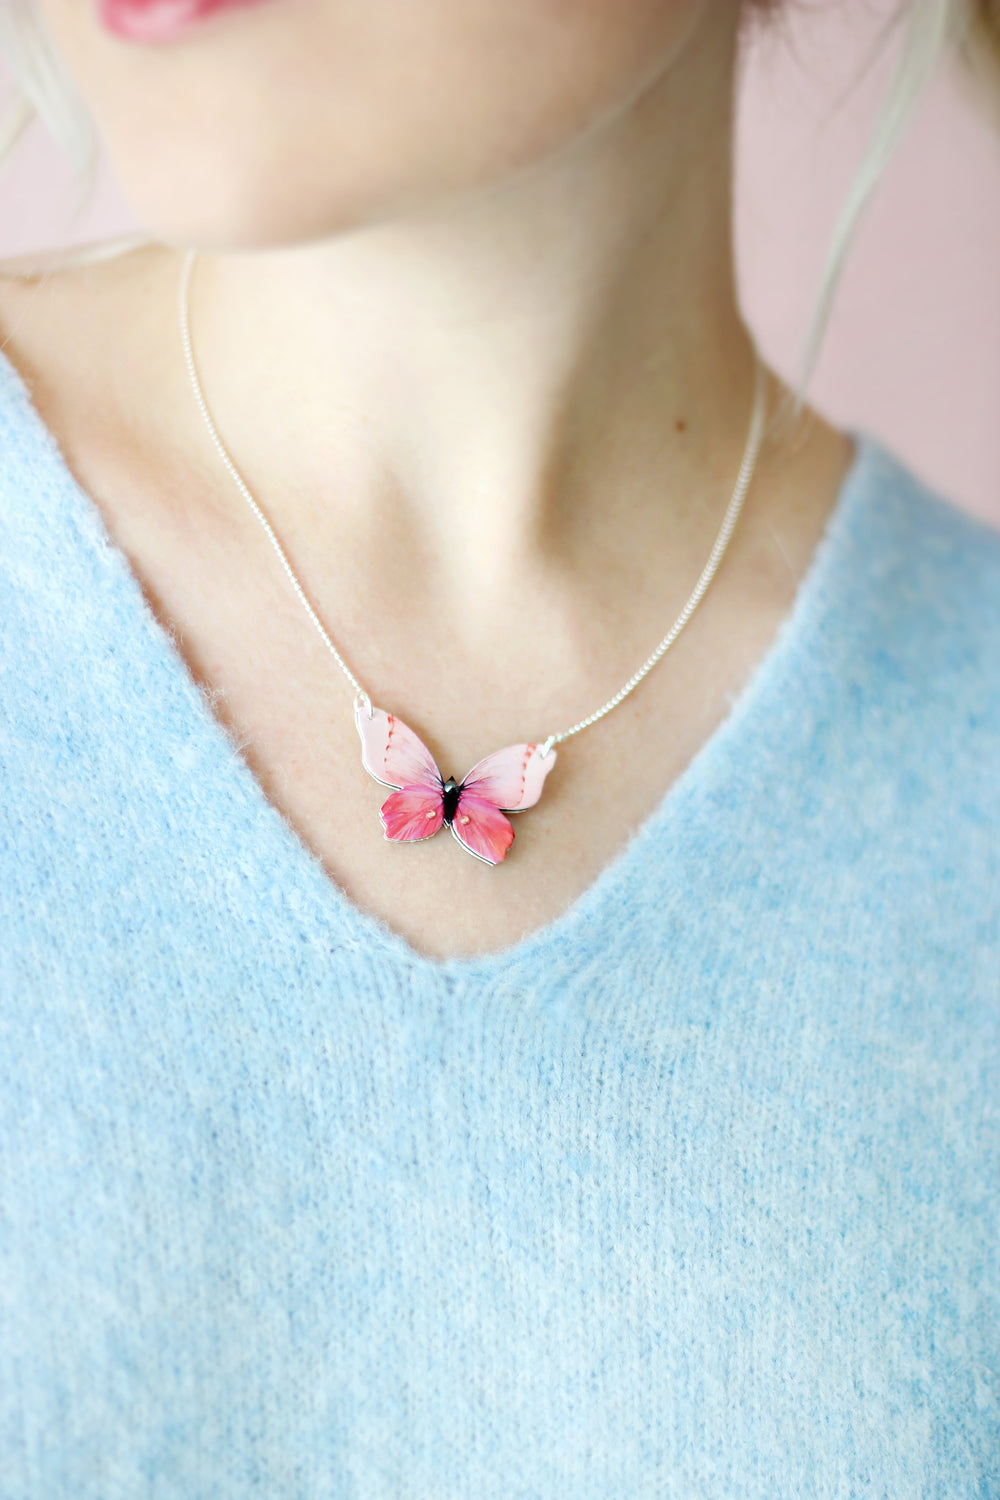 First Love Butterfly Necklace - KUMA Design Store